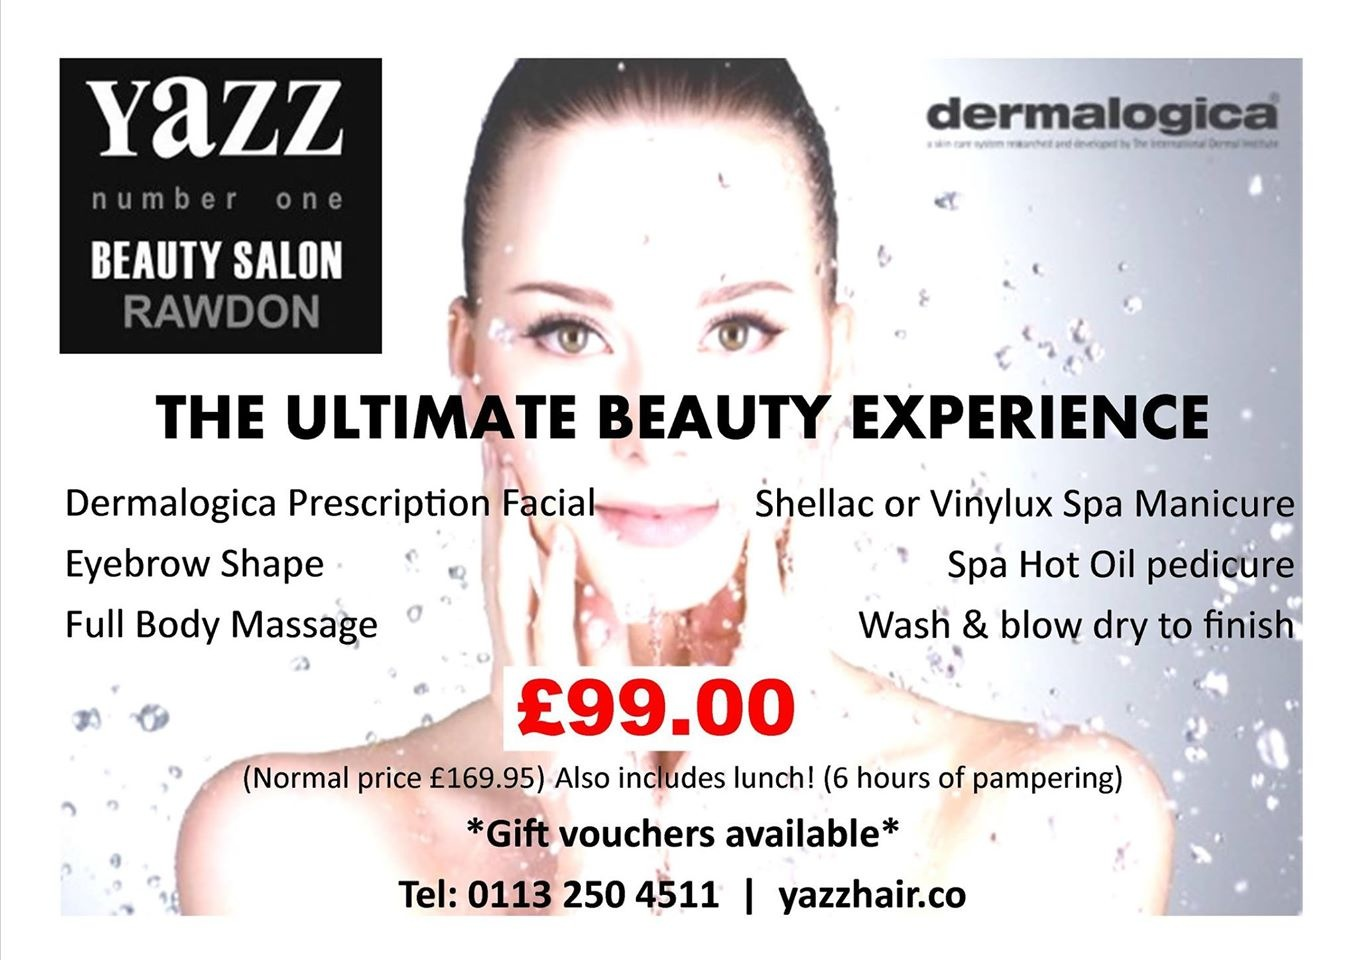 The Ultimate Beauty Experiance discount voucher from Yazz Beauty, Rawdon, Leeds